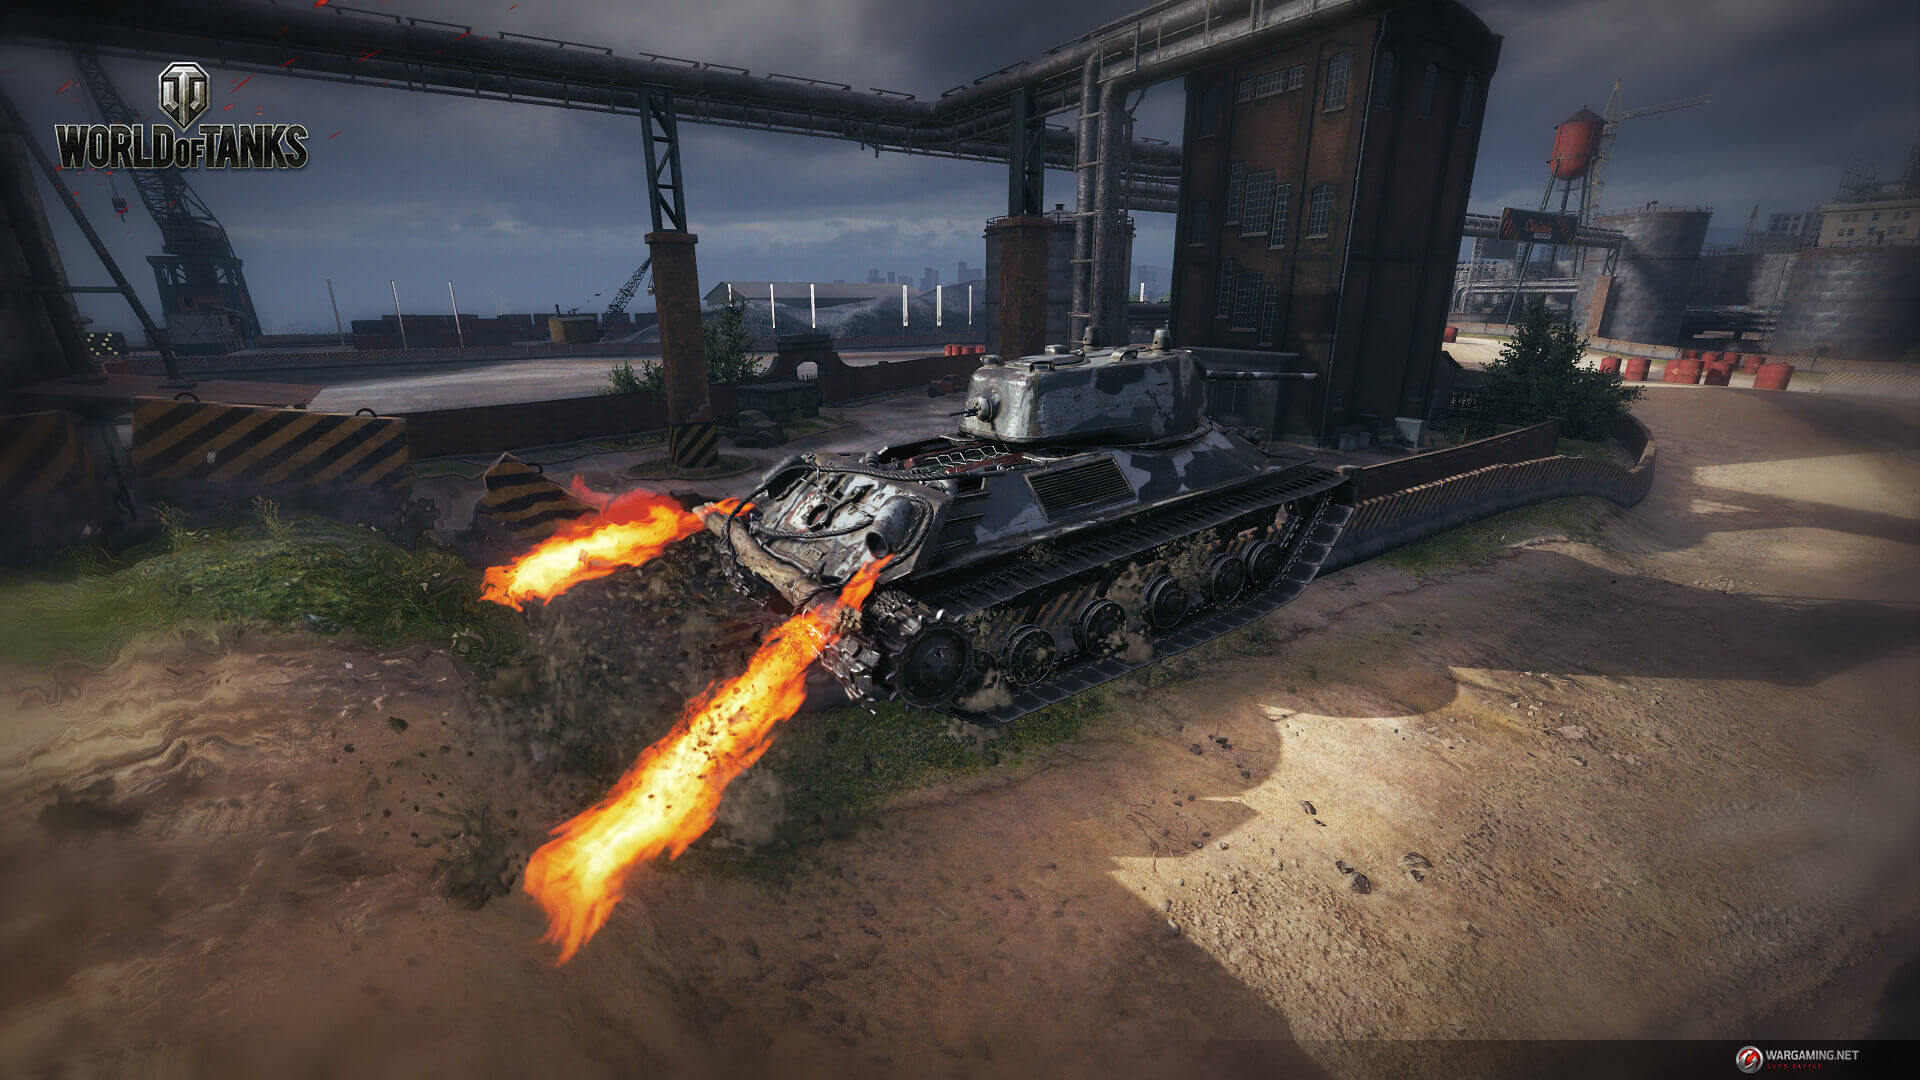 Обои World of tanks, мир танков, wot, chaffee sport, wargaming net, wg. Игры foto 11